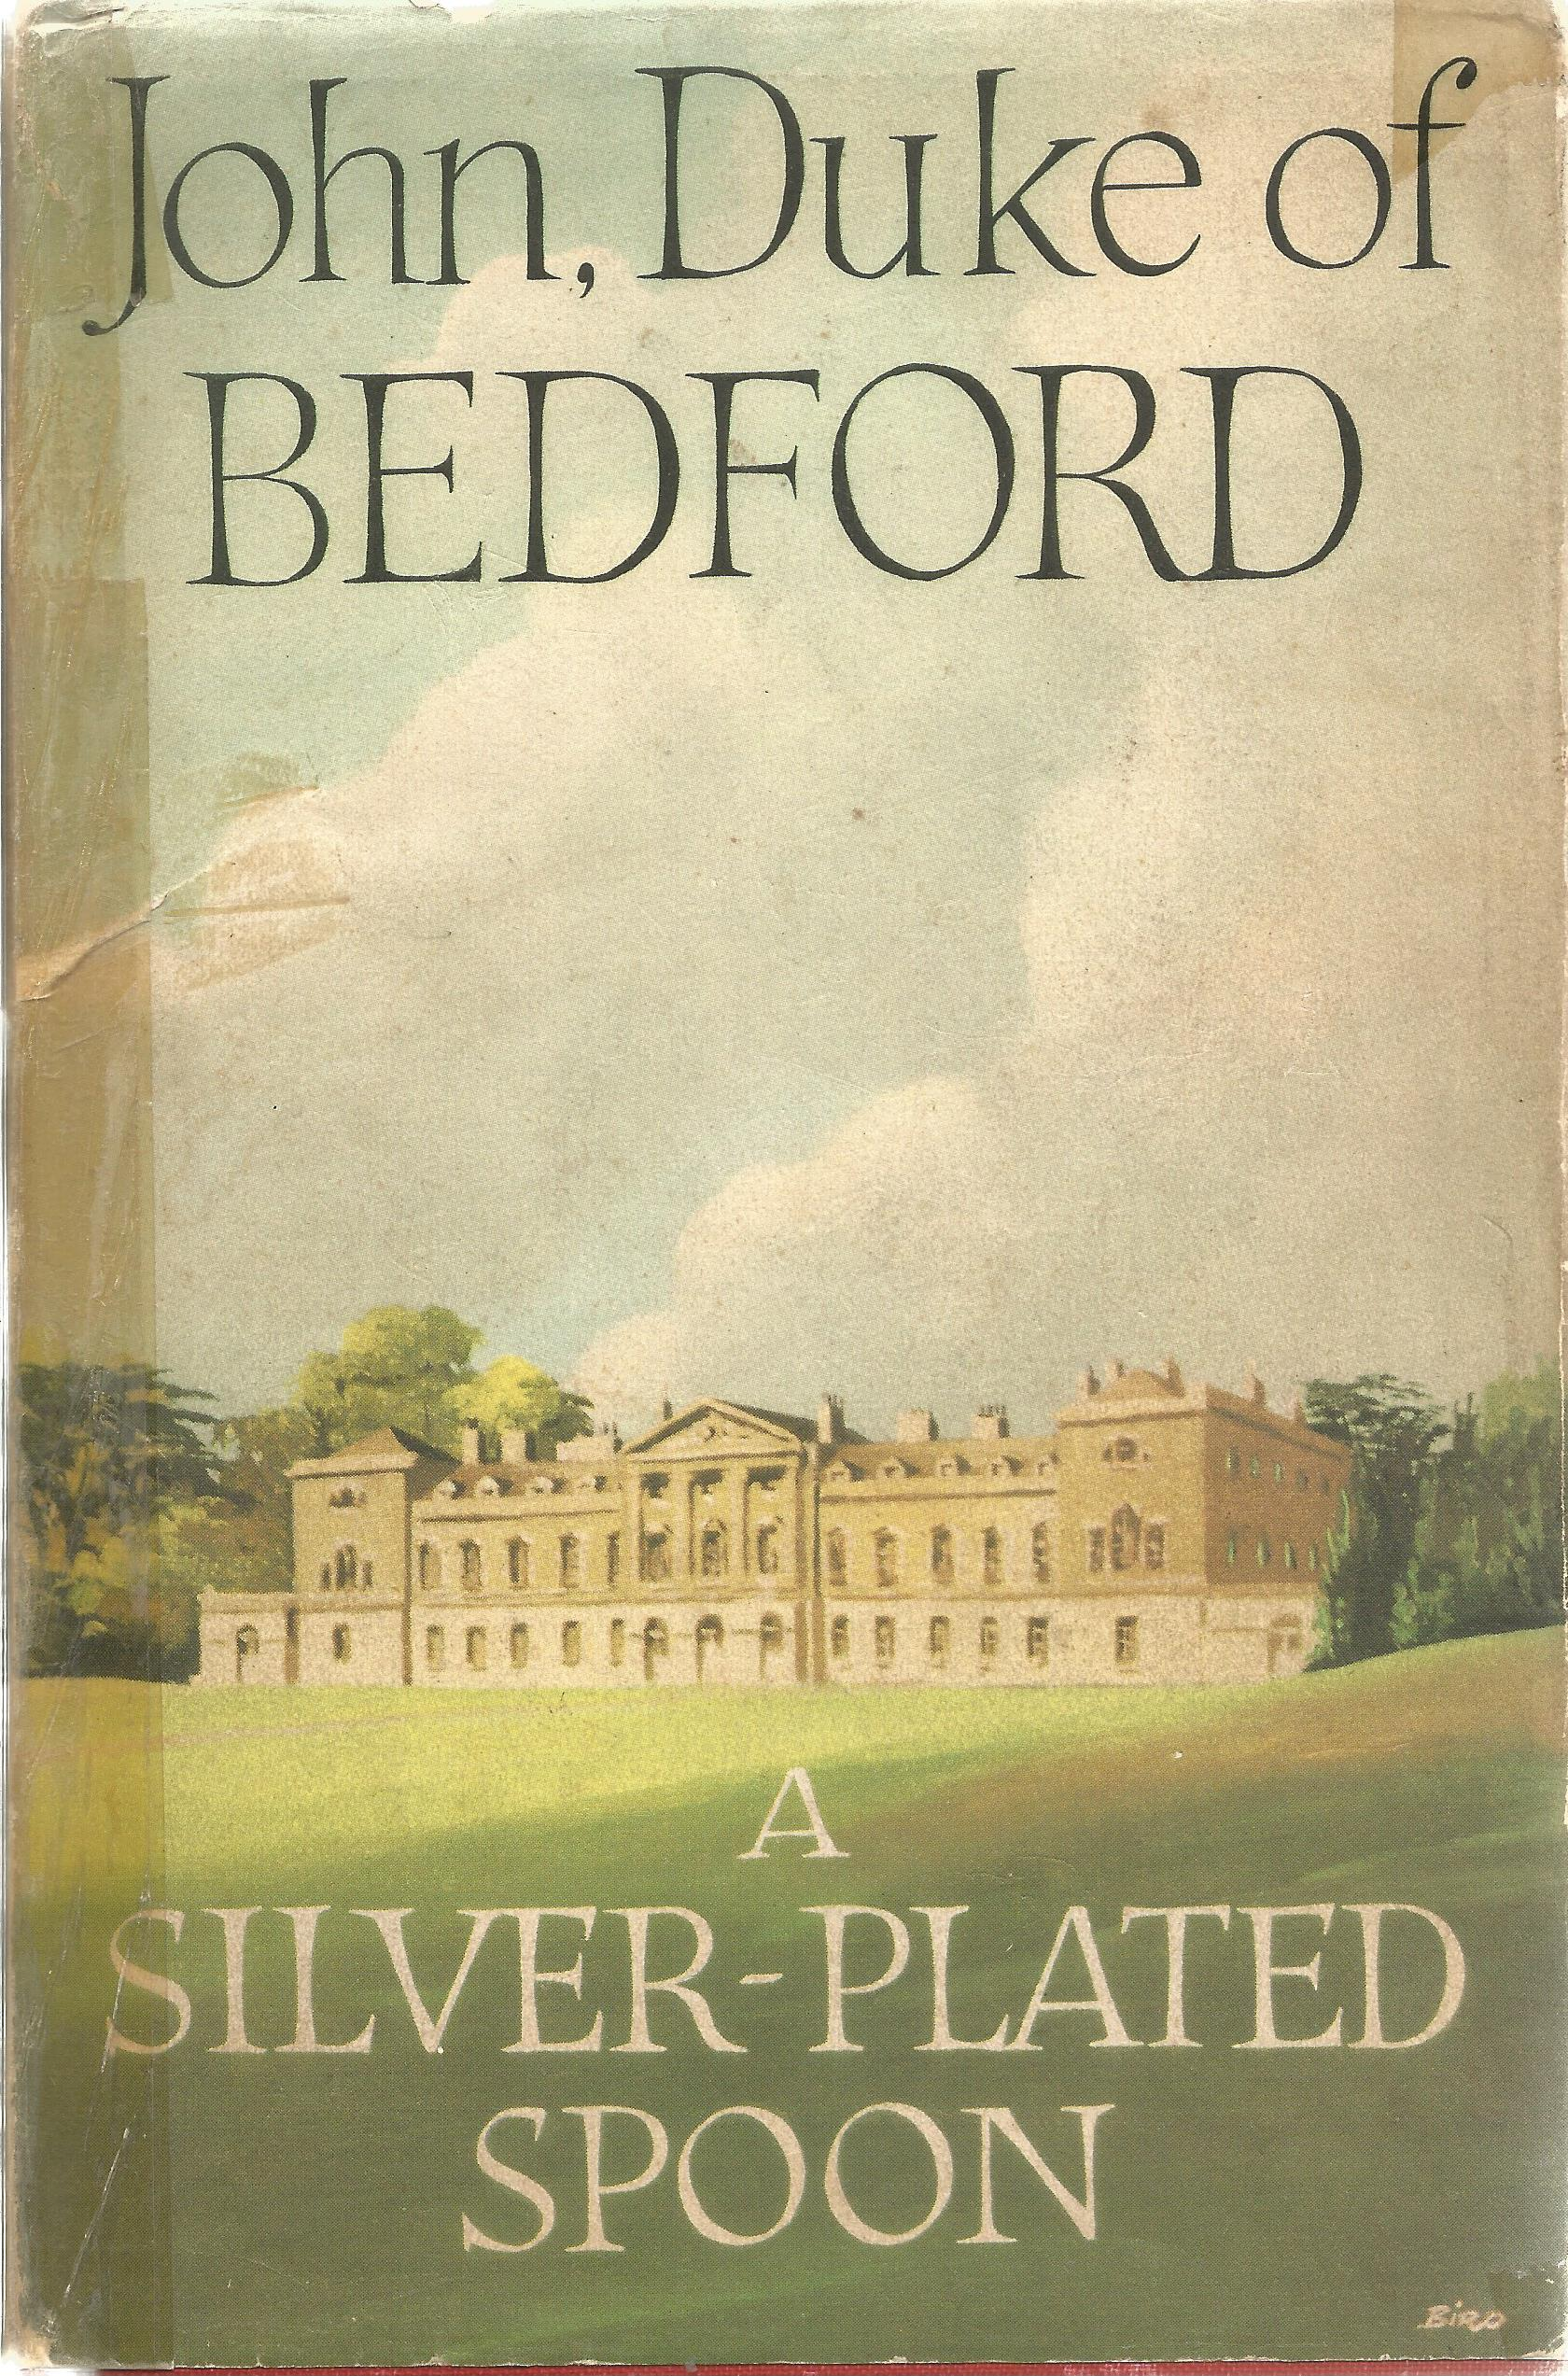 John, Duke of Bedford Hardback Book A Silver Plated Spoon 1959 signed by the Author on the Title